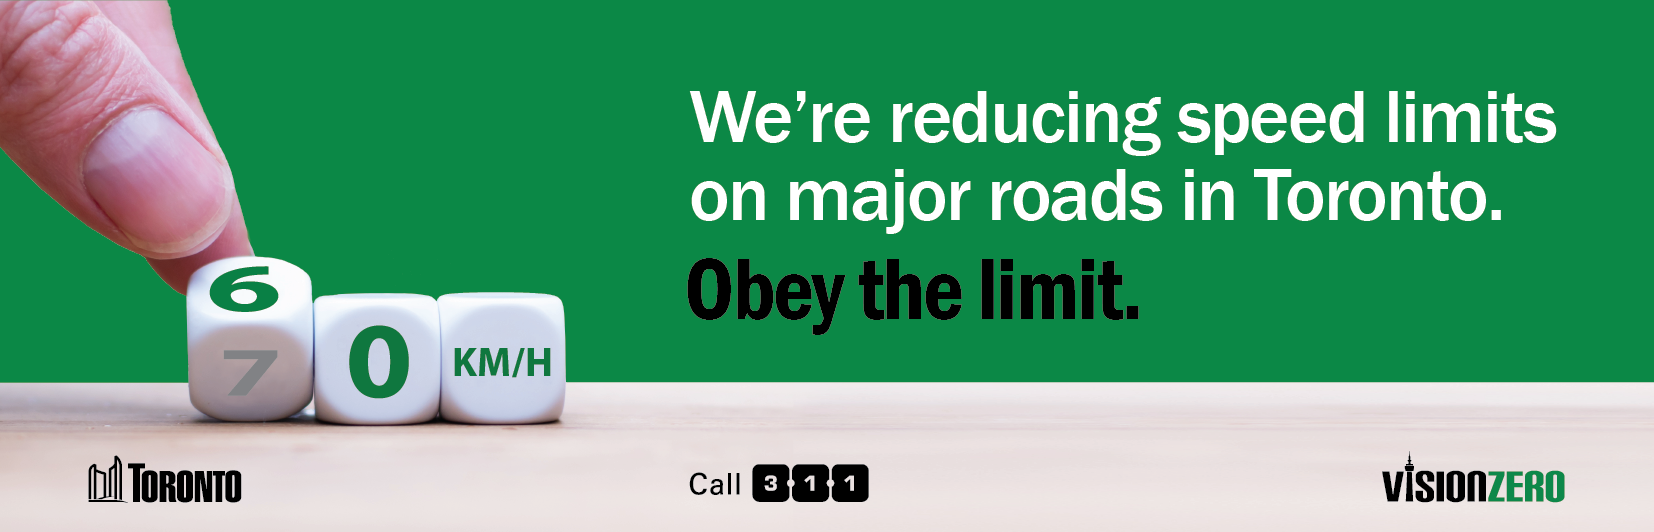 We're reducing speed limits on major roads in Toronto. Obey the limit.